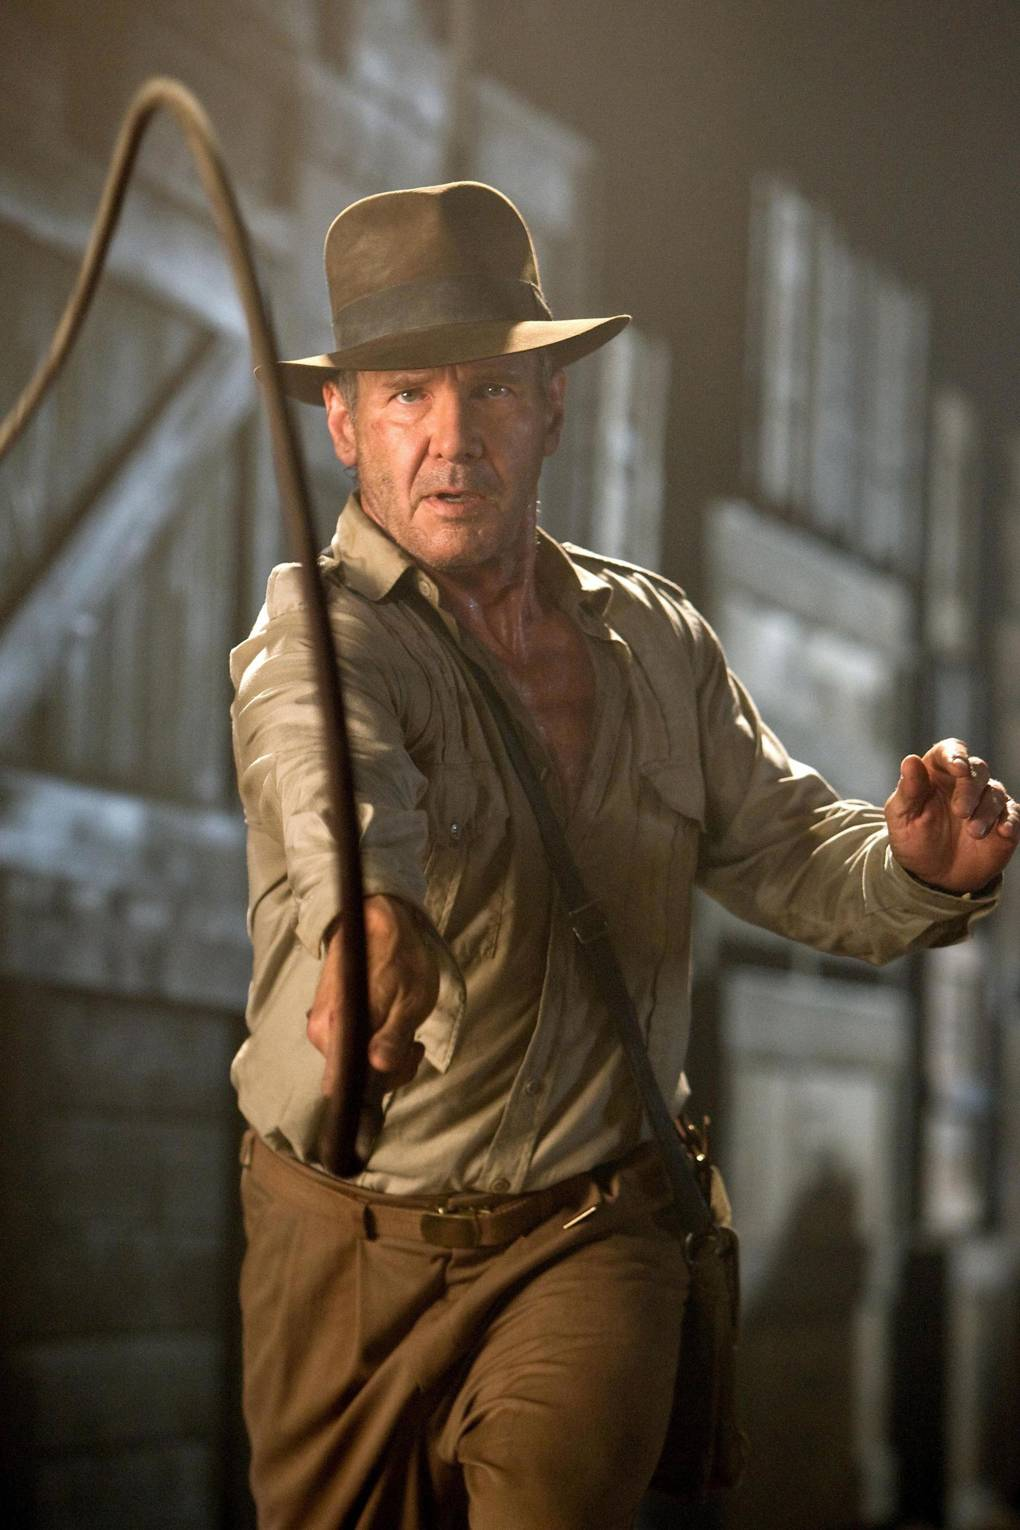 indiana-jones-01-4apr18_rex_b